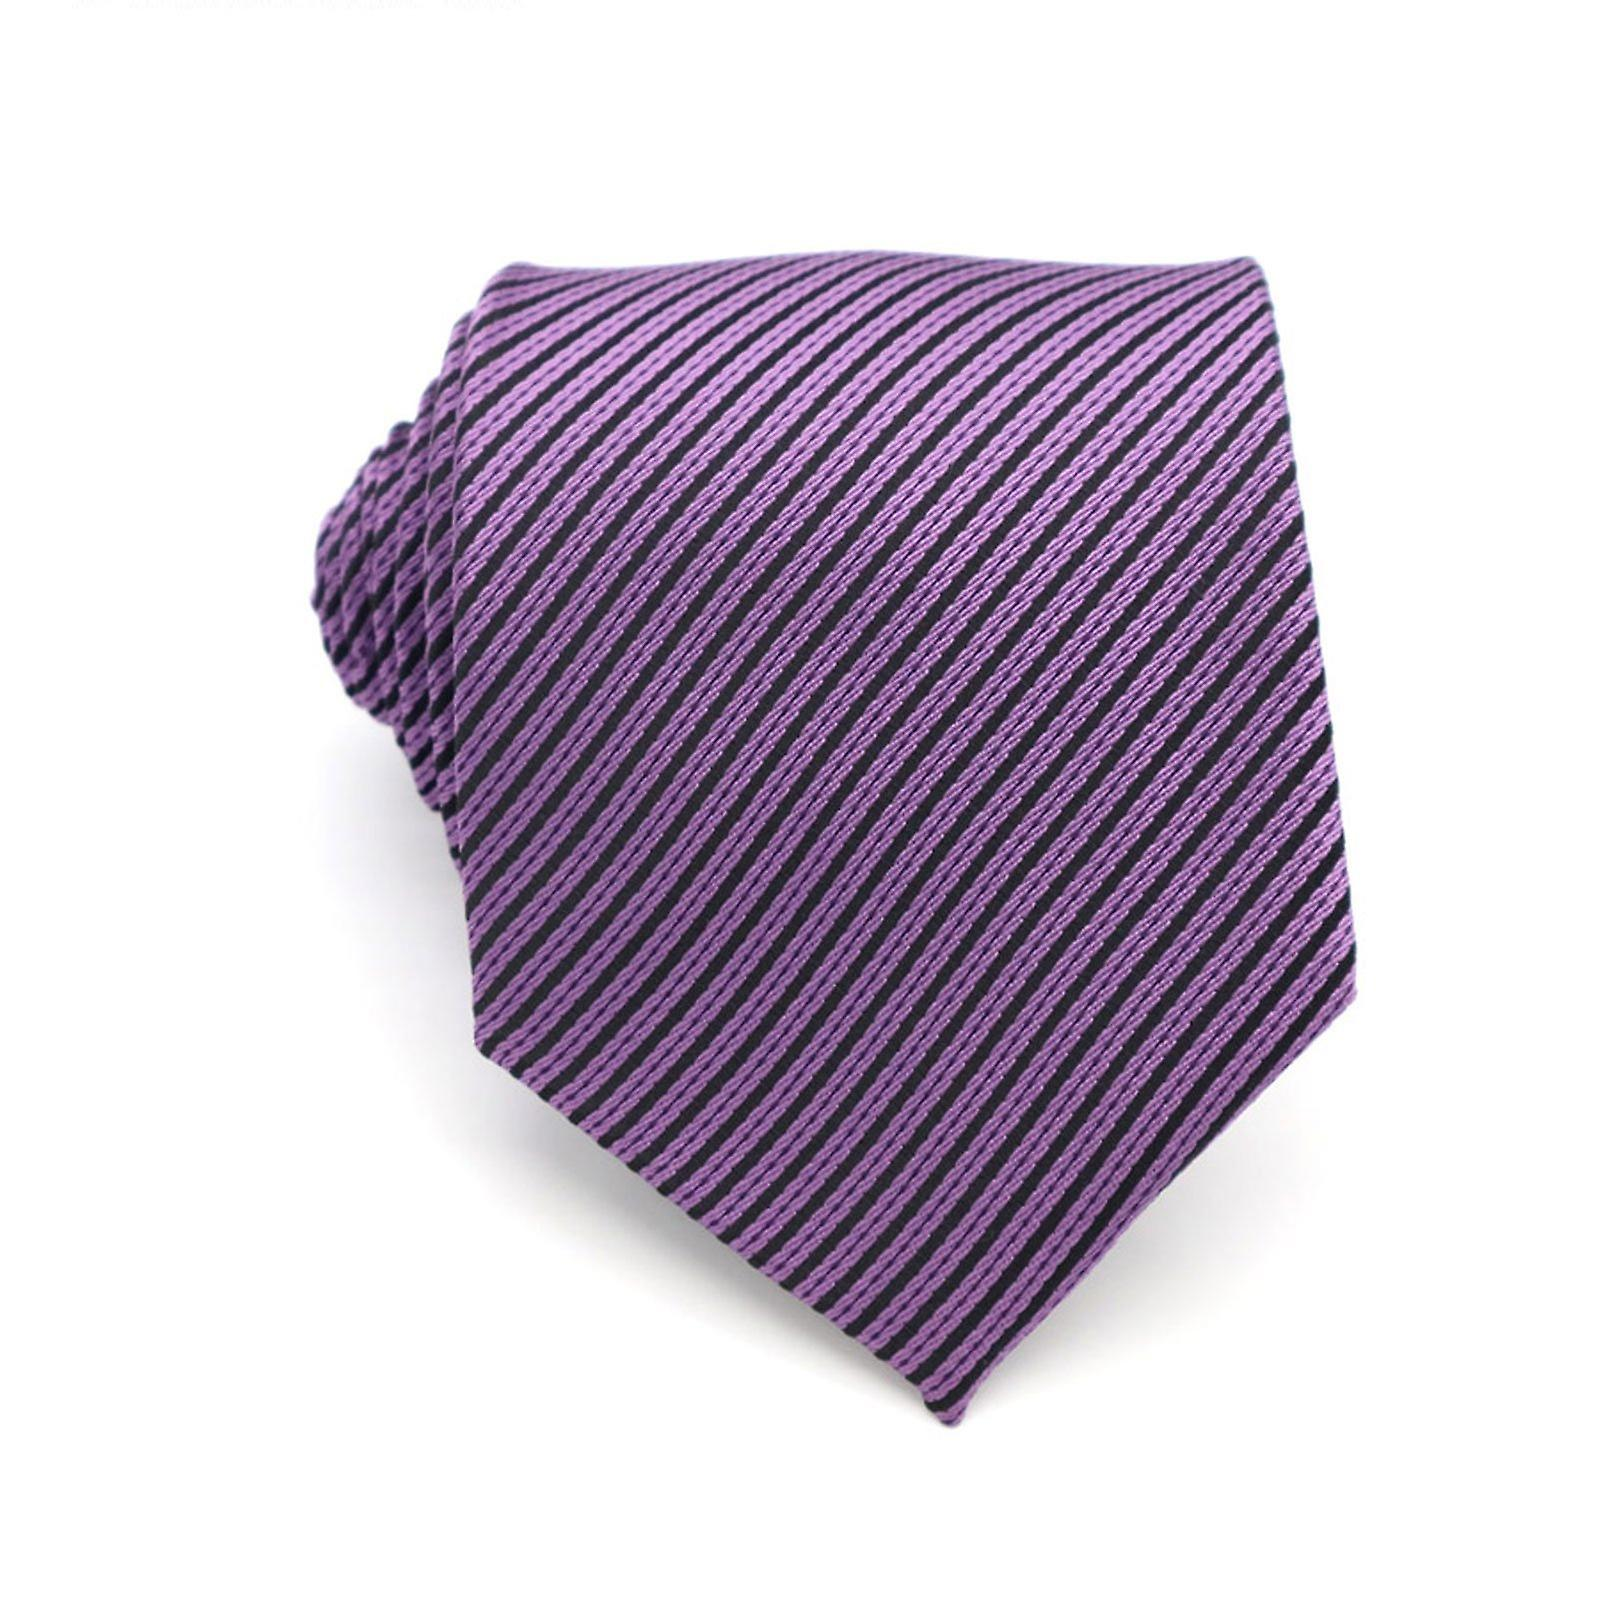 Solid purple plaid stripe necktie & pocket square set